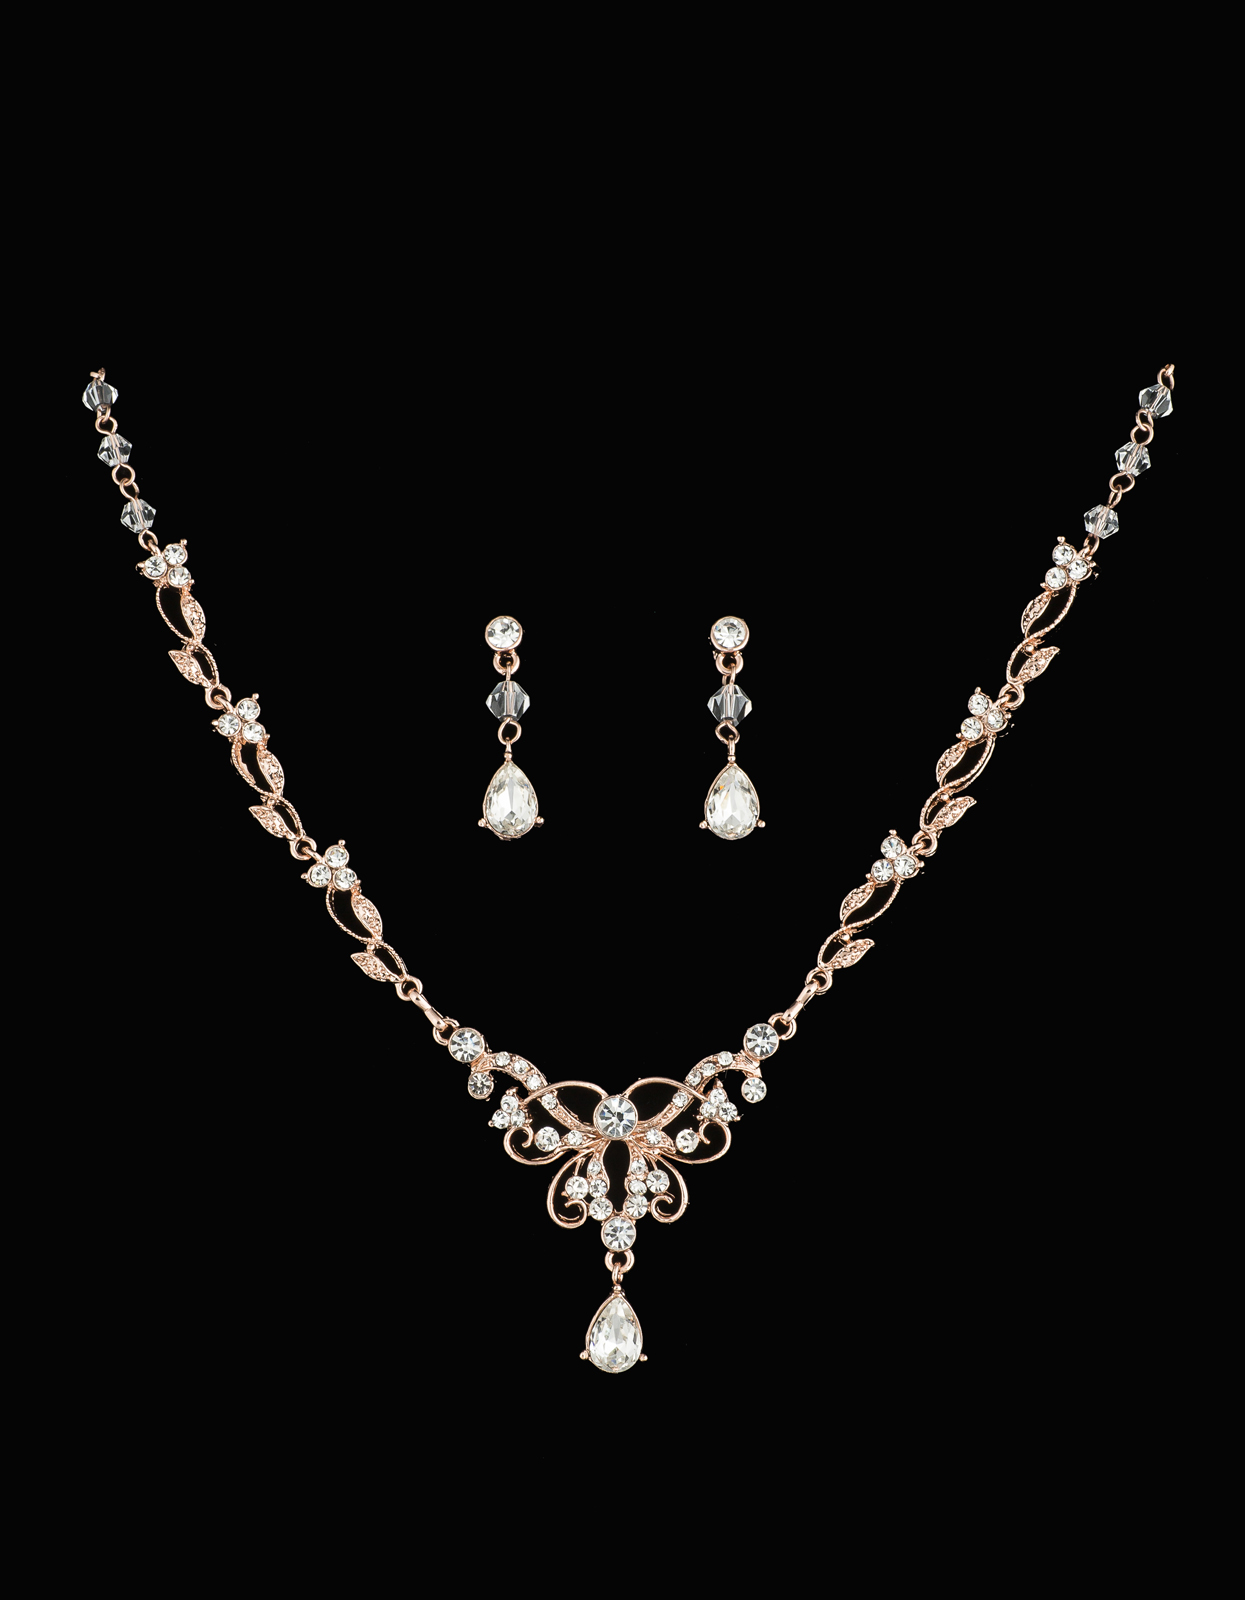 Bridal Classics Necklace Sets MJ-249